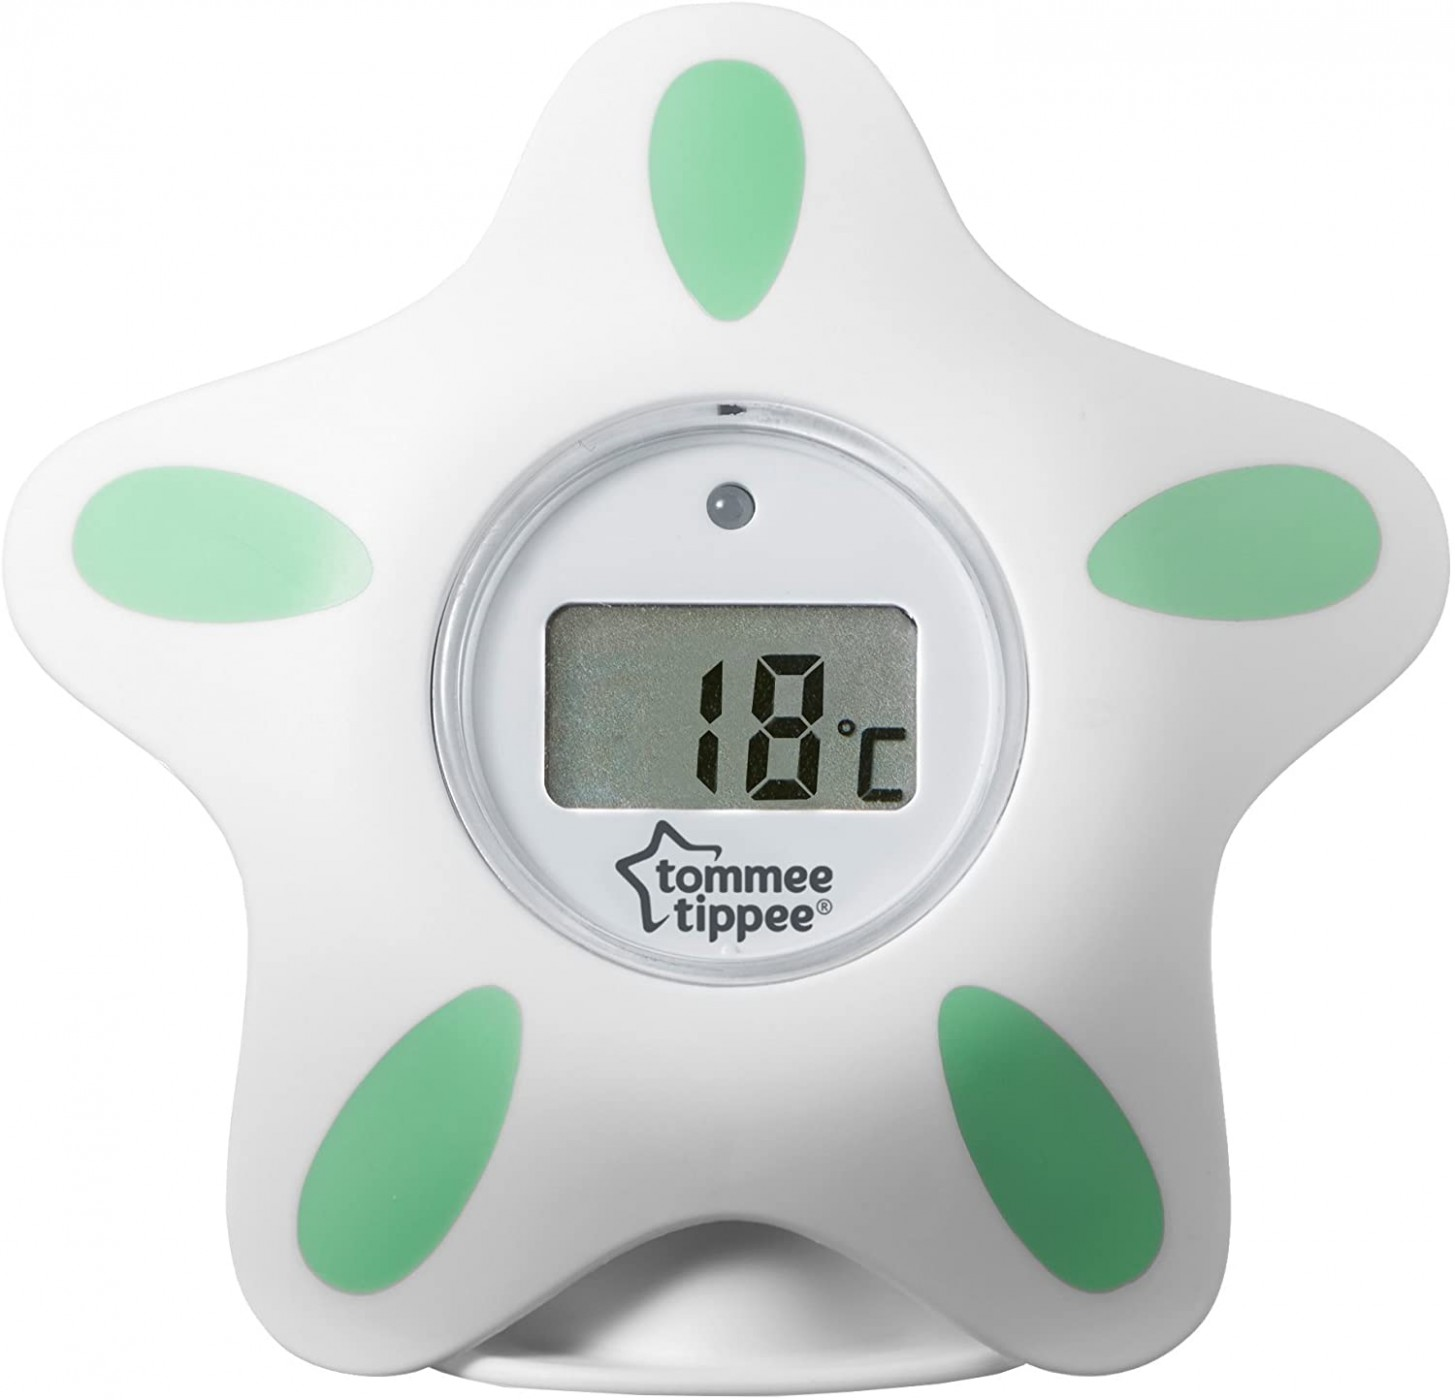 Tommee Tippee Closer to Nature Bath and Room Thermometer - Baby Room Thermometer